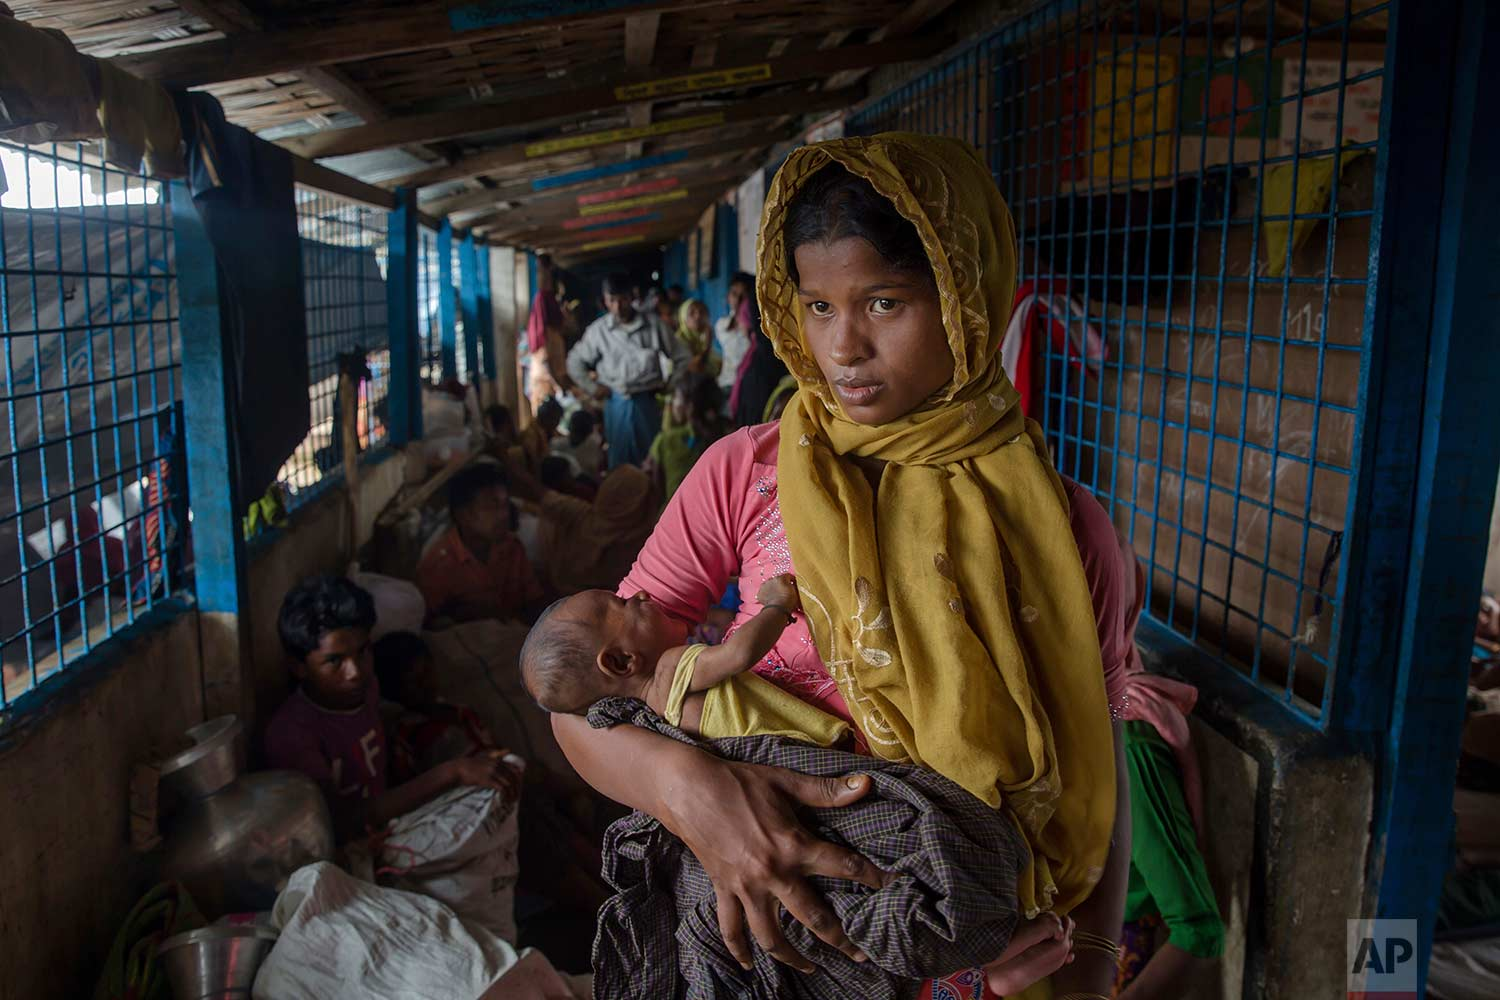 A Rohingya Muslim woman Setara Begum, who crossed over from Myanmar into Bangladesh, holds her 45-day-old son Mohammad Hussain in a dormitory of a school in Kutupalong refugee camp, Bangladesh, Friday, Oct. 20, 2017. (AP Photo/Dar Yasin)